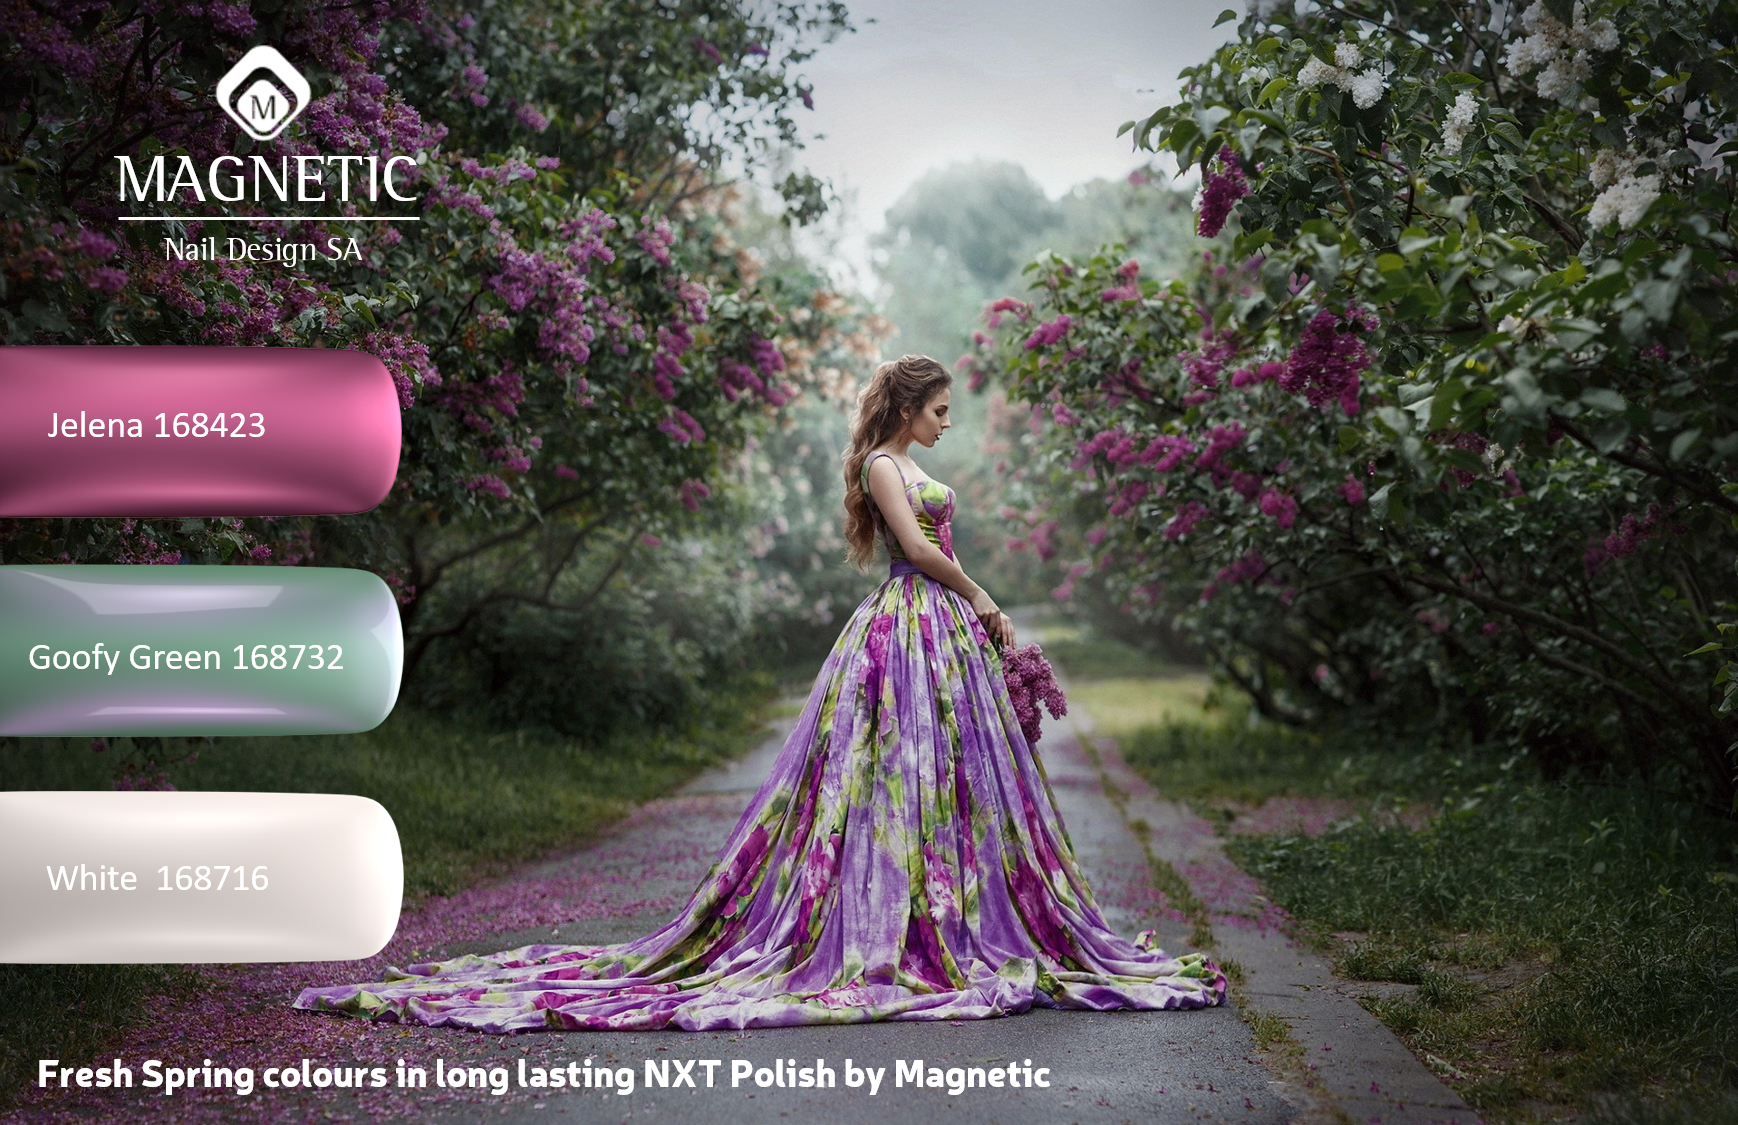 As always, our Spring Colours in our NXT Long Lasting Polish are stunning. Your clients will love them. Save on our Spring Collection this World day. See http://magneticna.co.za/nail-training-and-product-specials/ for more